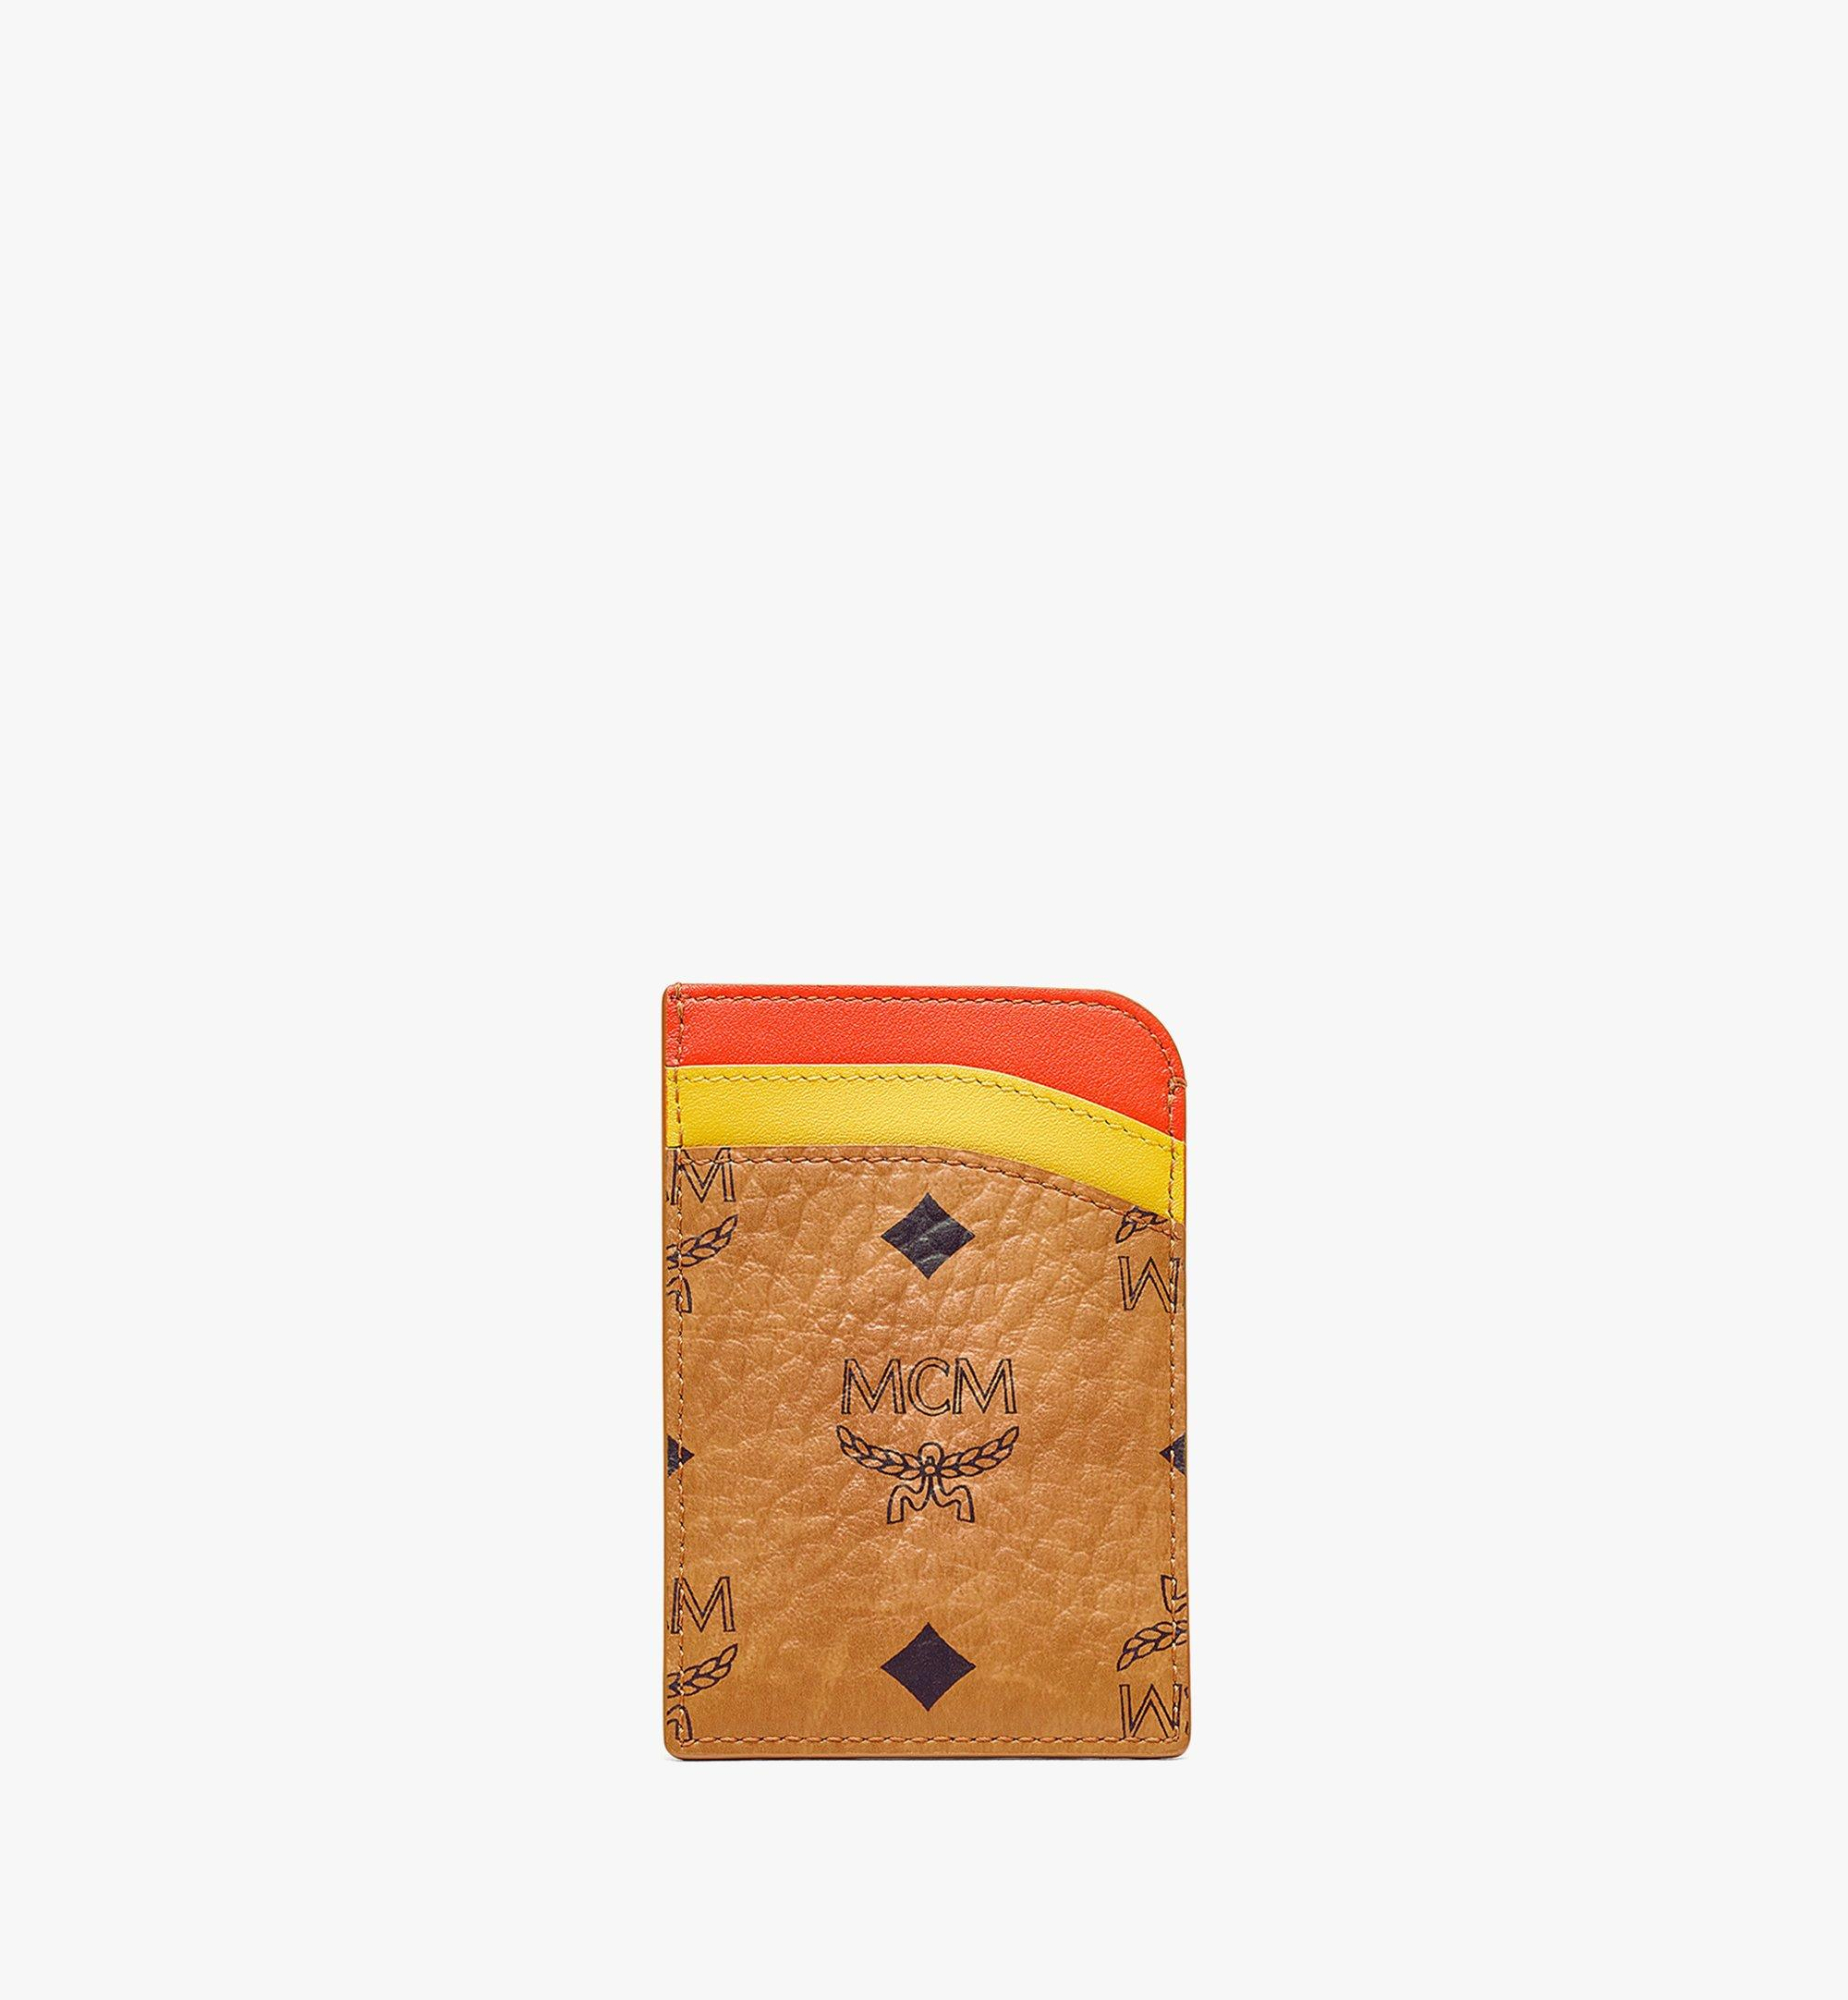 MCM MCM Zoo N/S Monkey Card Case in Visetos Leather Mix Cognac MXABSXL05CO001 Alternate View 2